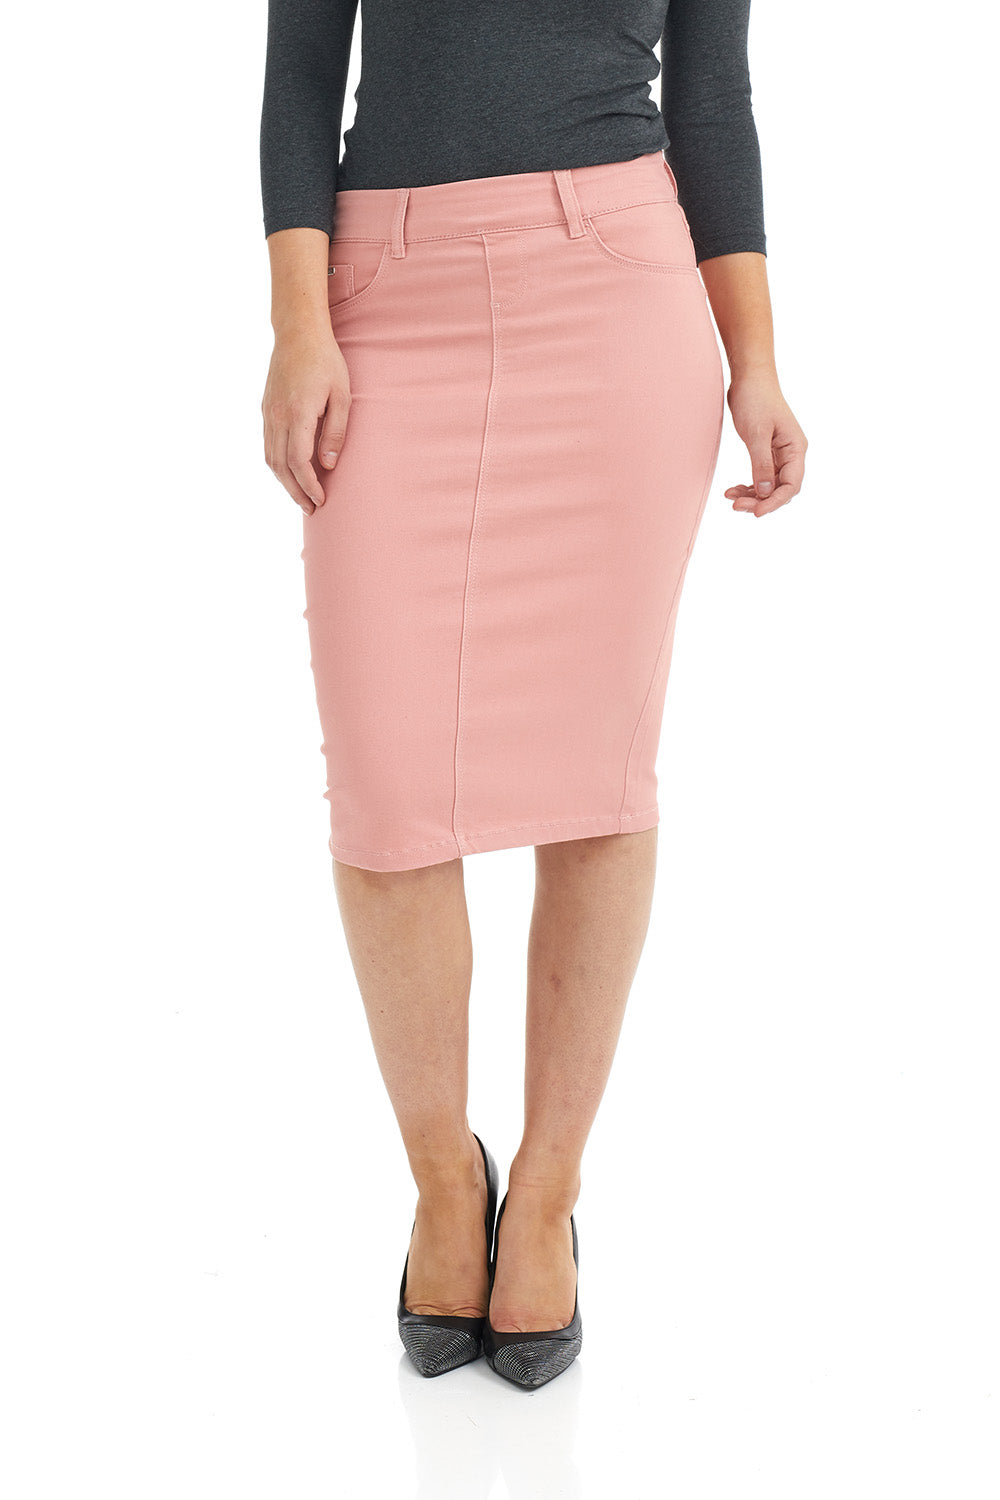 ESTEEZ BROOKLYN SKIRT - Below the knee Jean Skirt for women - PINK